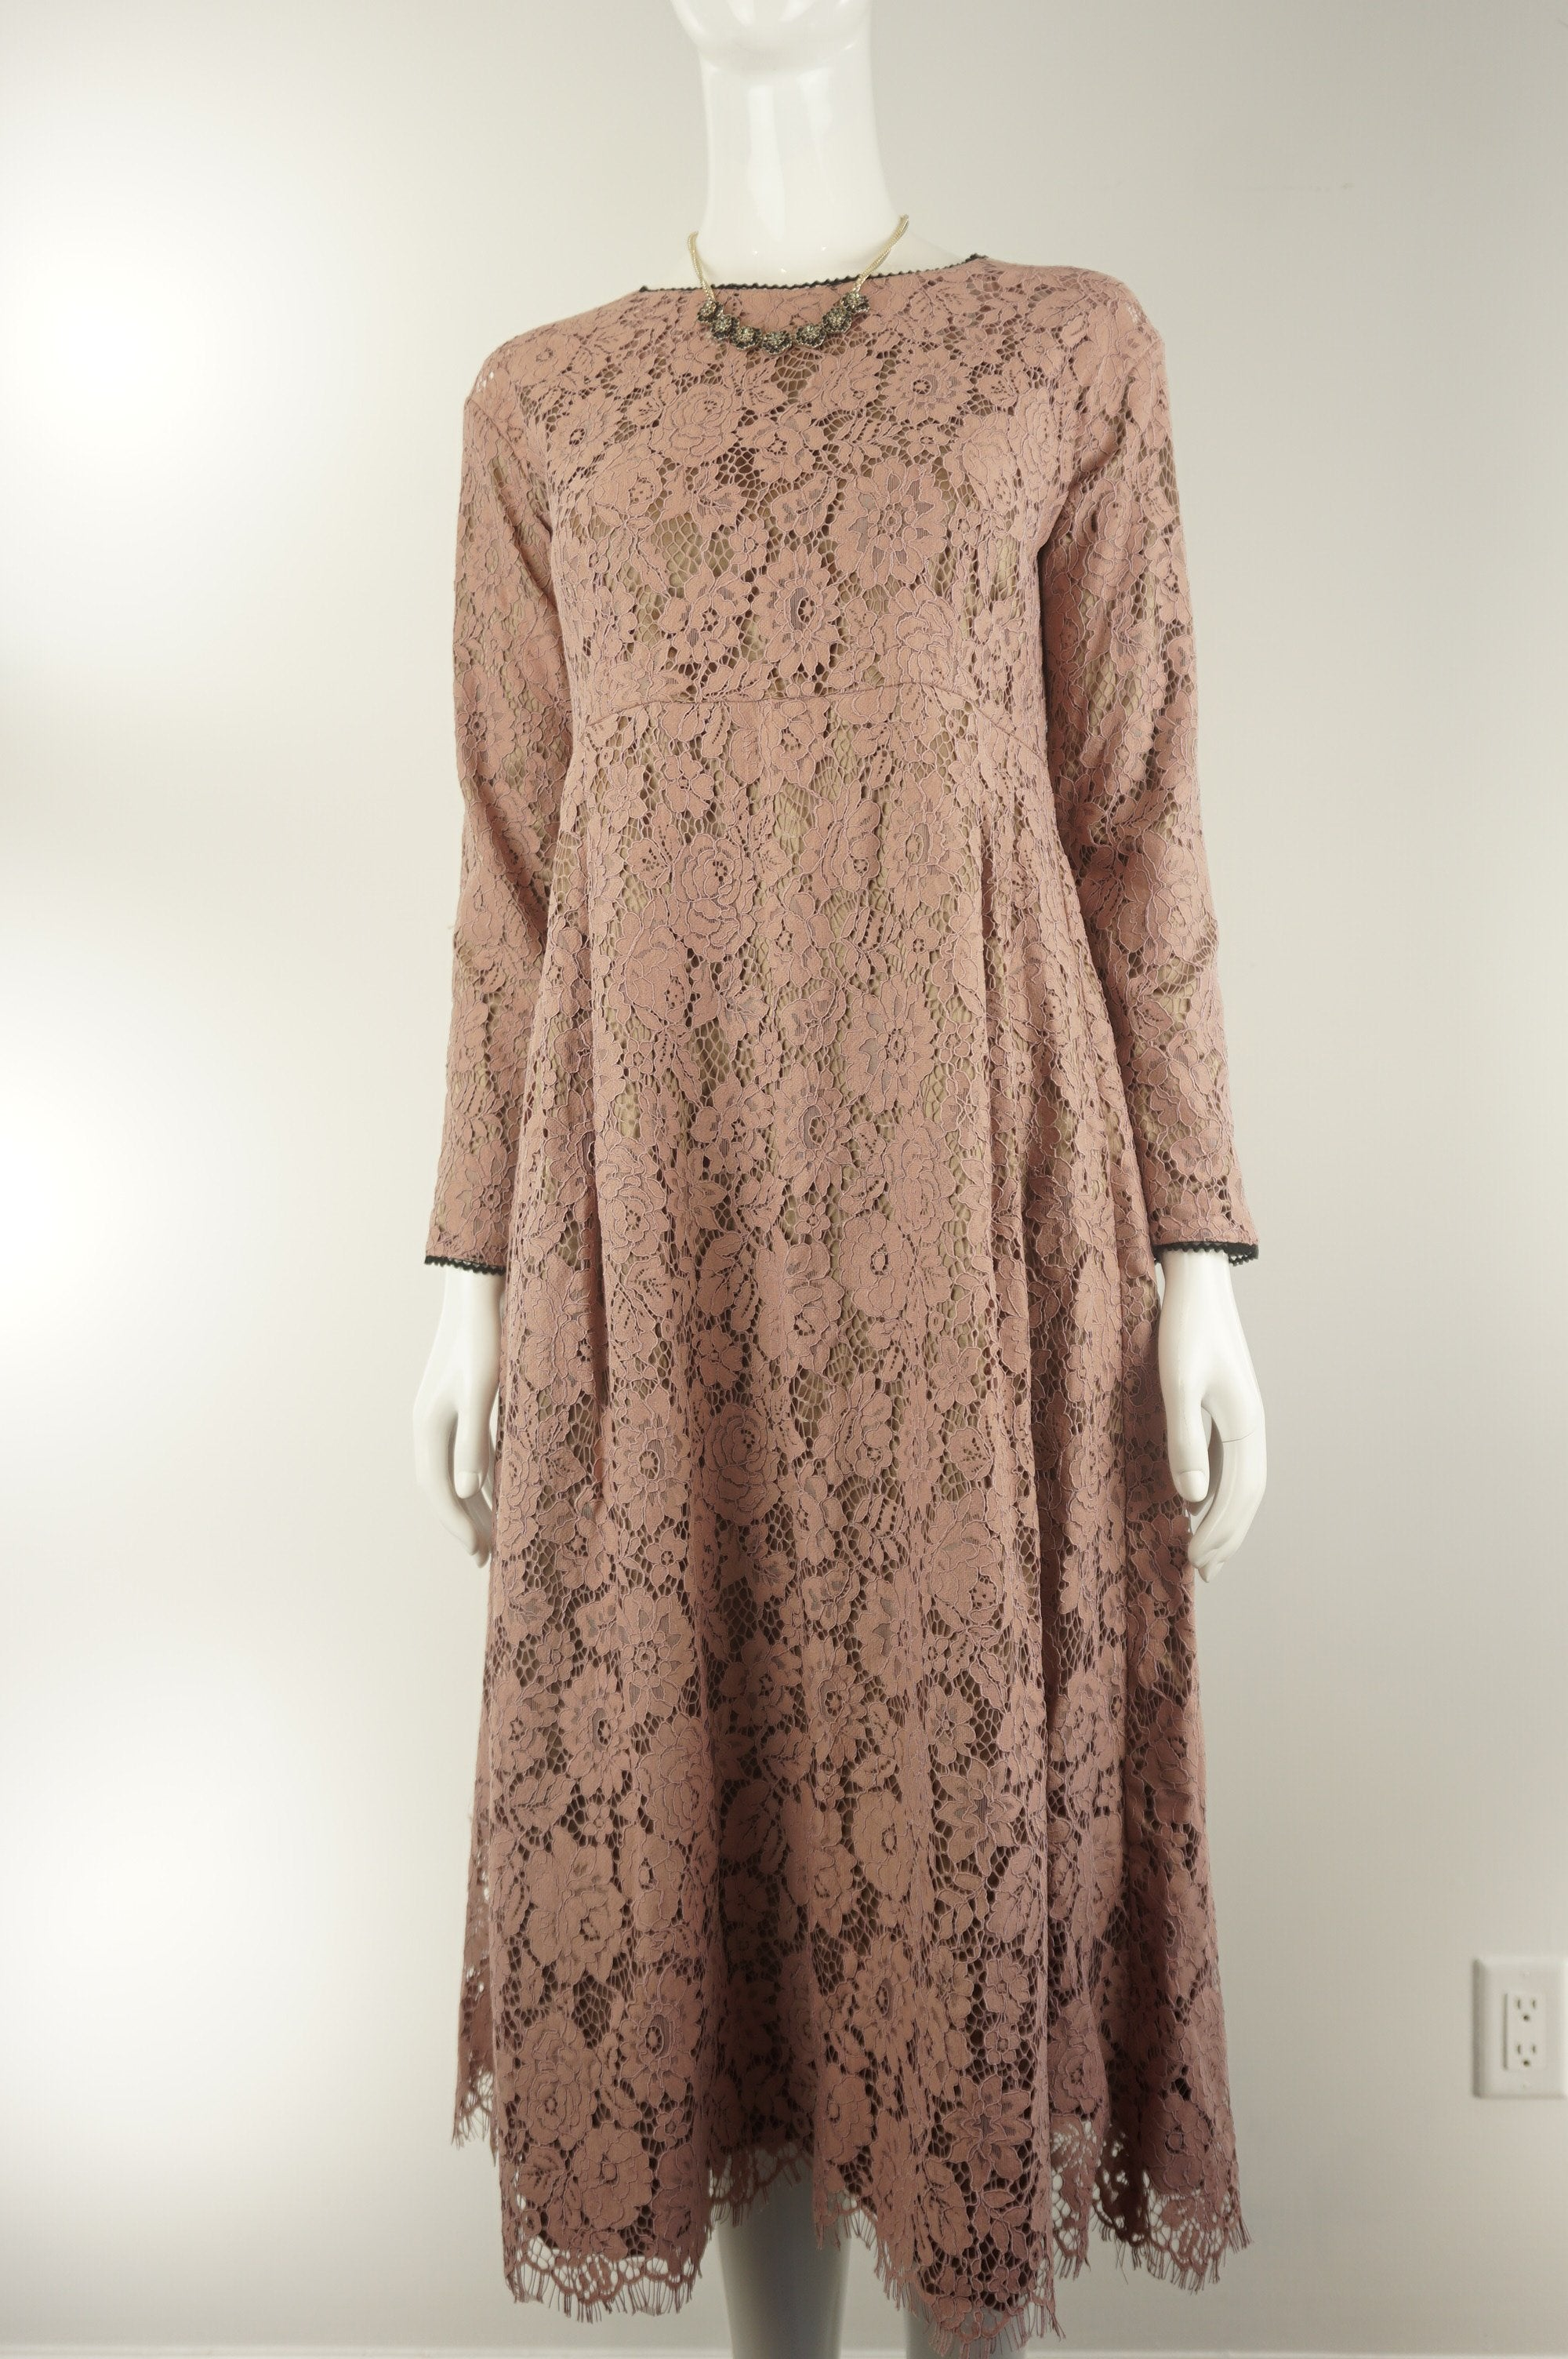 Elli Share Chic Lace Dress, Cute long lace dress. Pull over syle, no sipper., Pink, Shell: Lace, Liner: polyester, women's Dresses & Rompers, women's Pink Dresses & Rompers, Elli Share women's Dresses & Rompers, women's lace midi tunic dress, pullover lace midi flare dress, chic pink midi flare dress